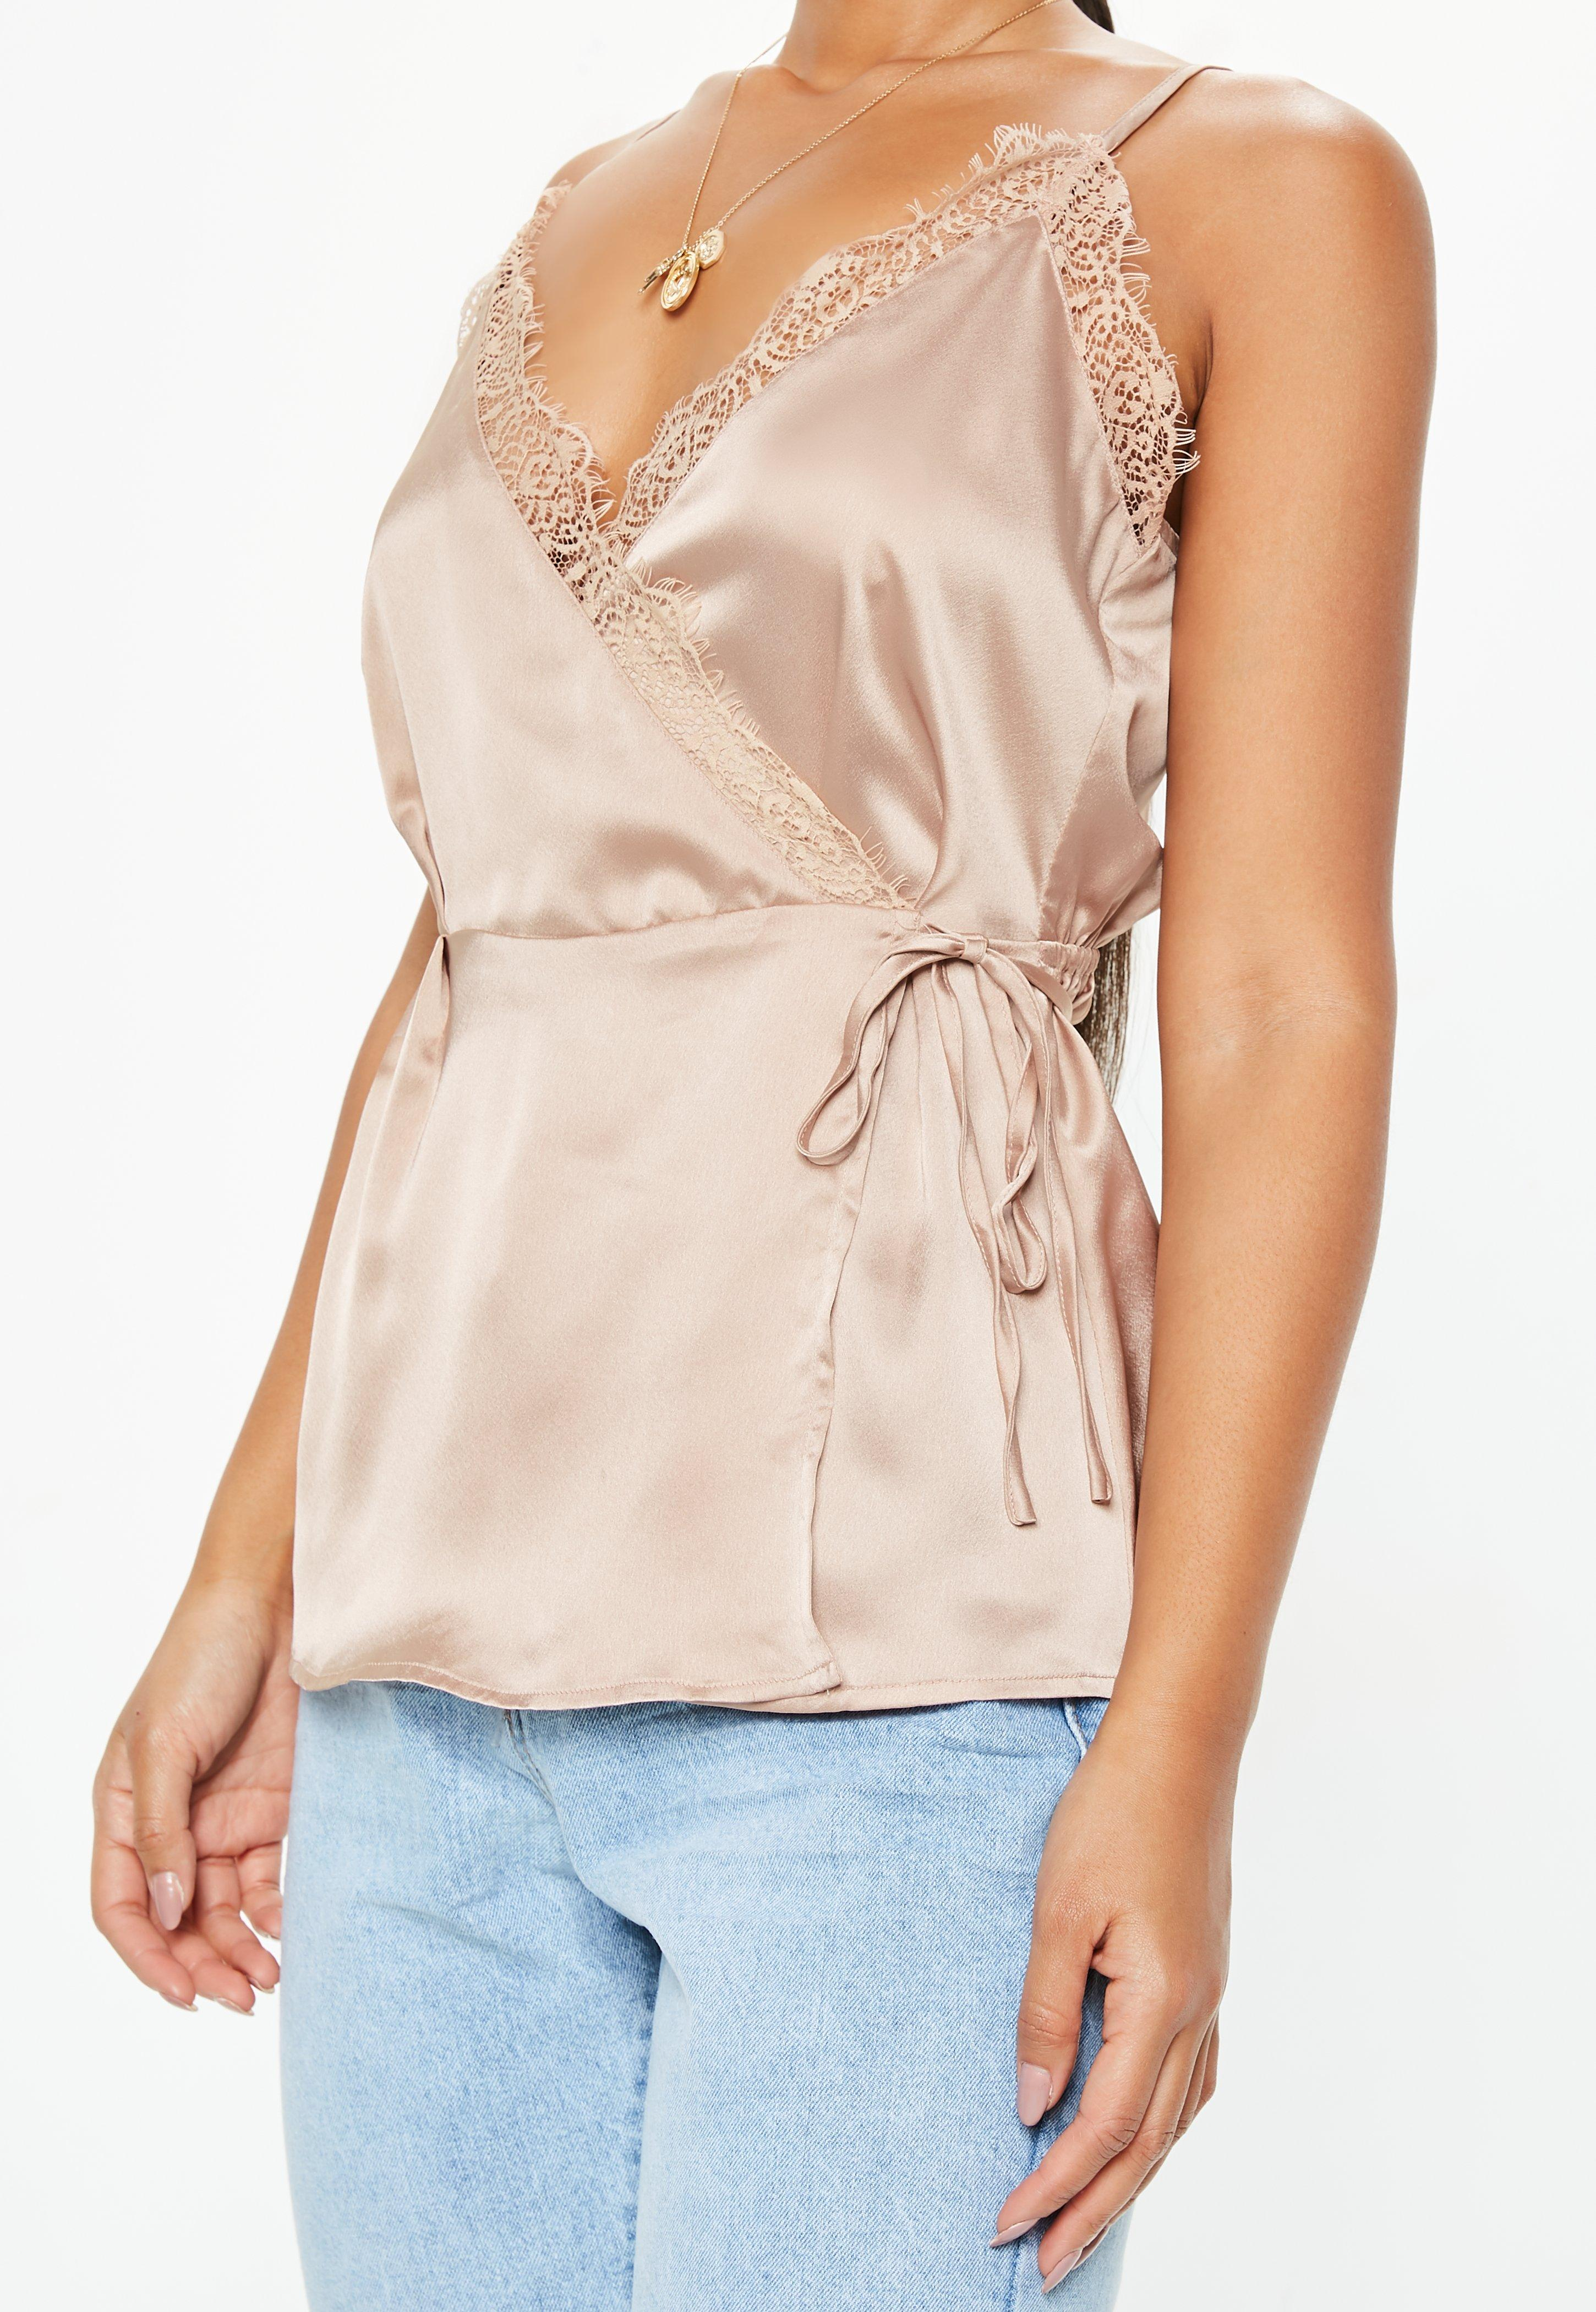 Missguided Eyelash Lace Cami Dress Nude in Natural - Lyst